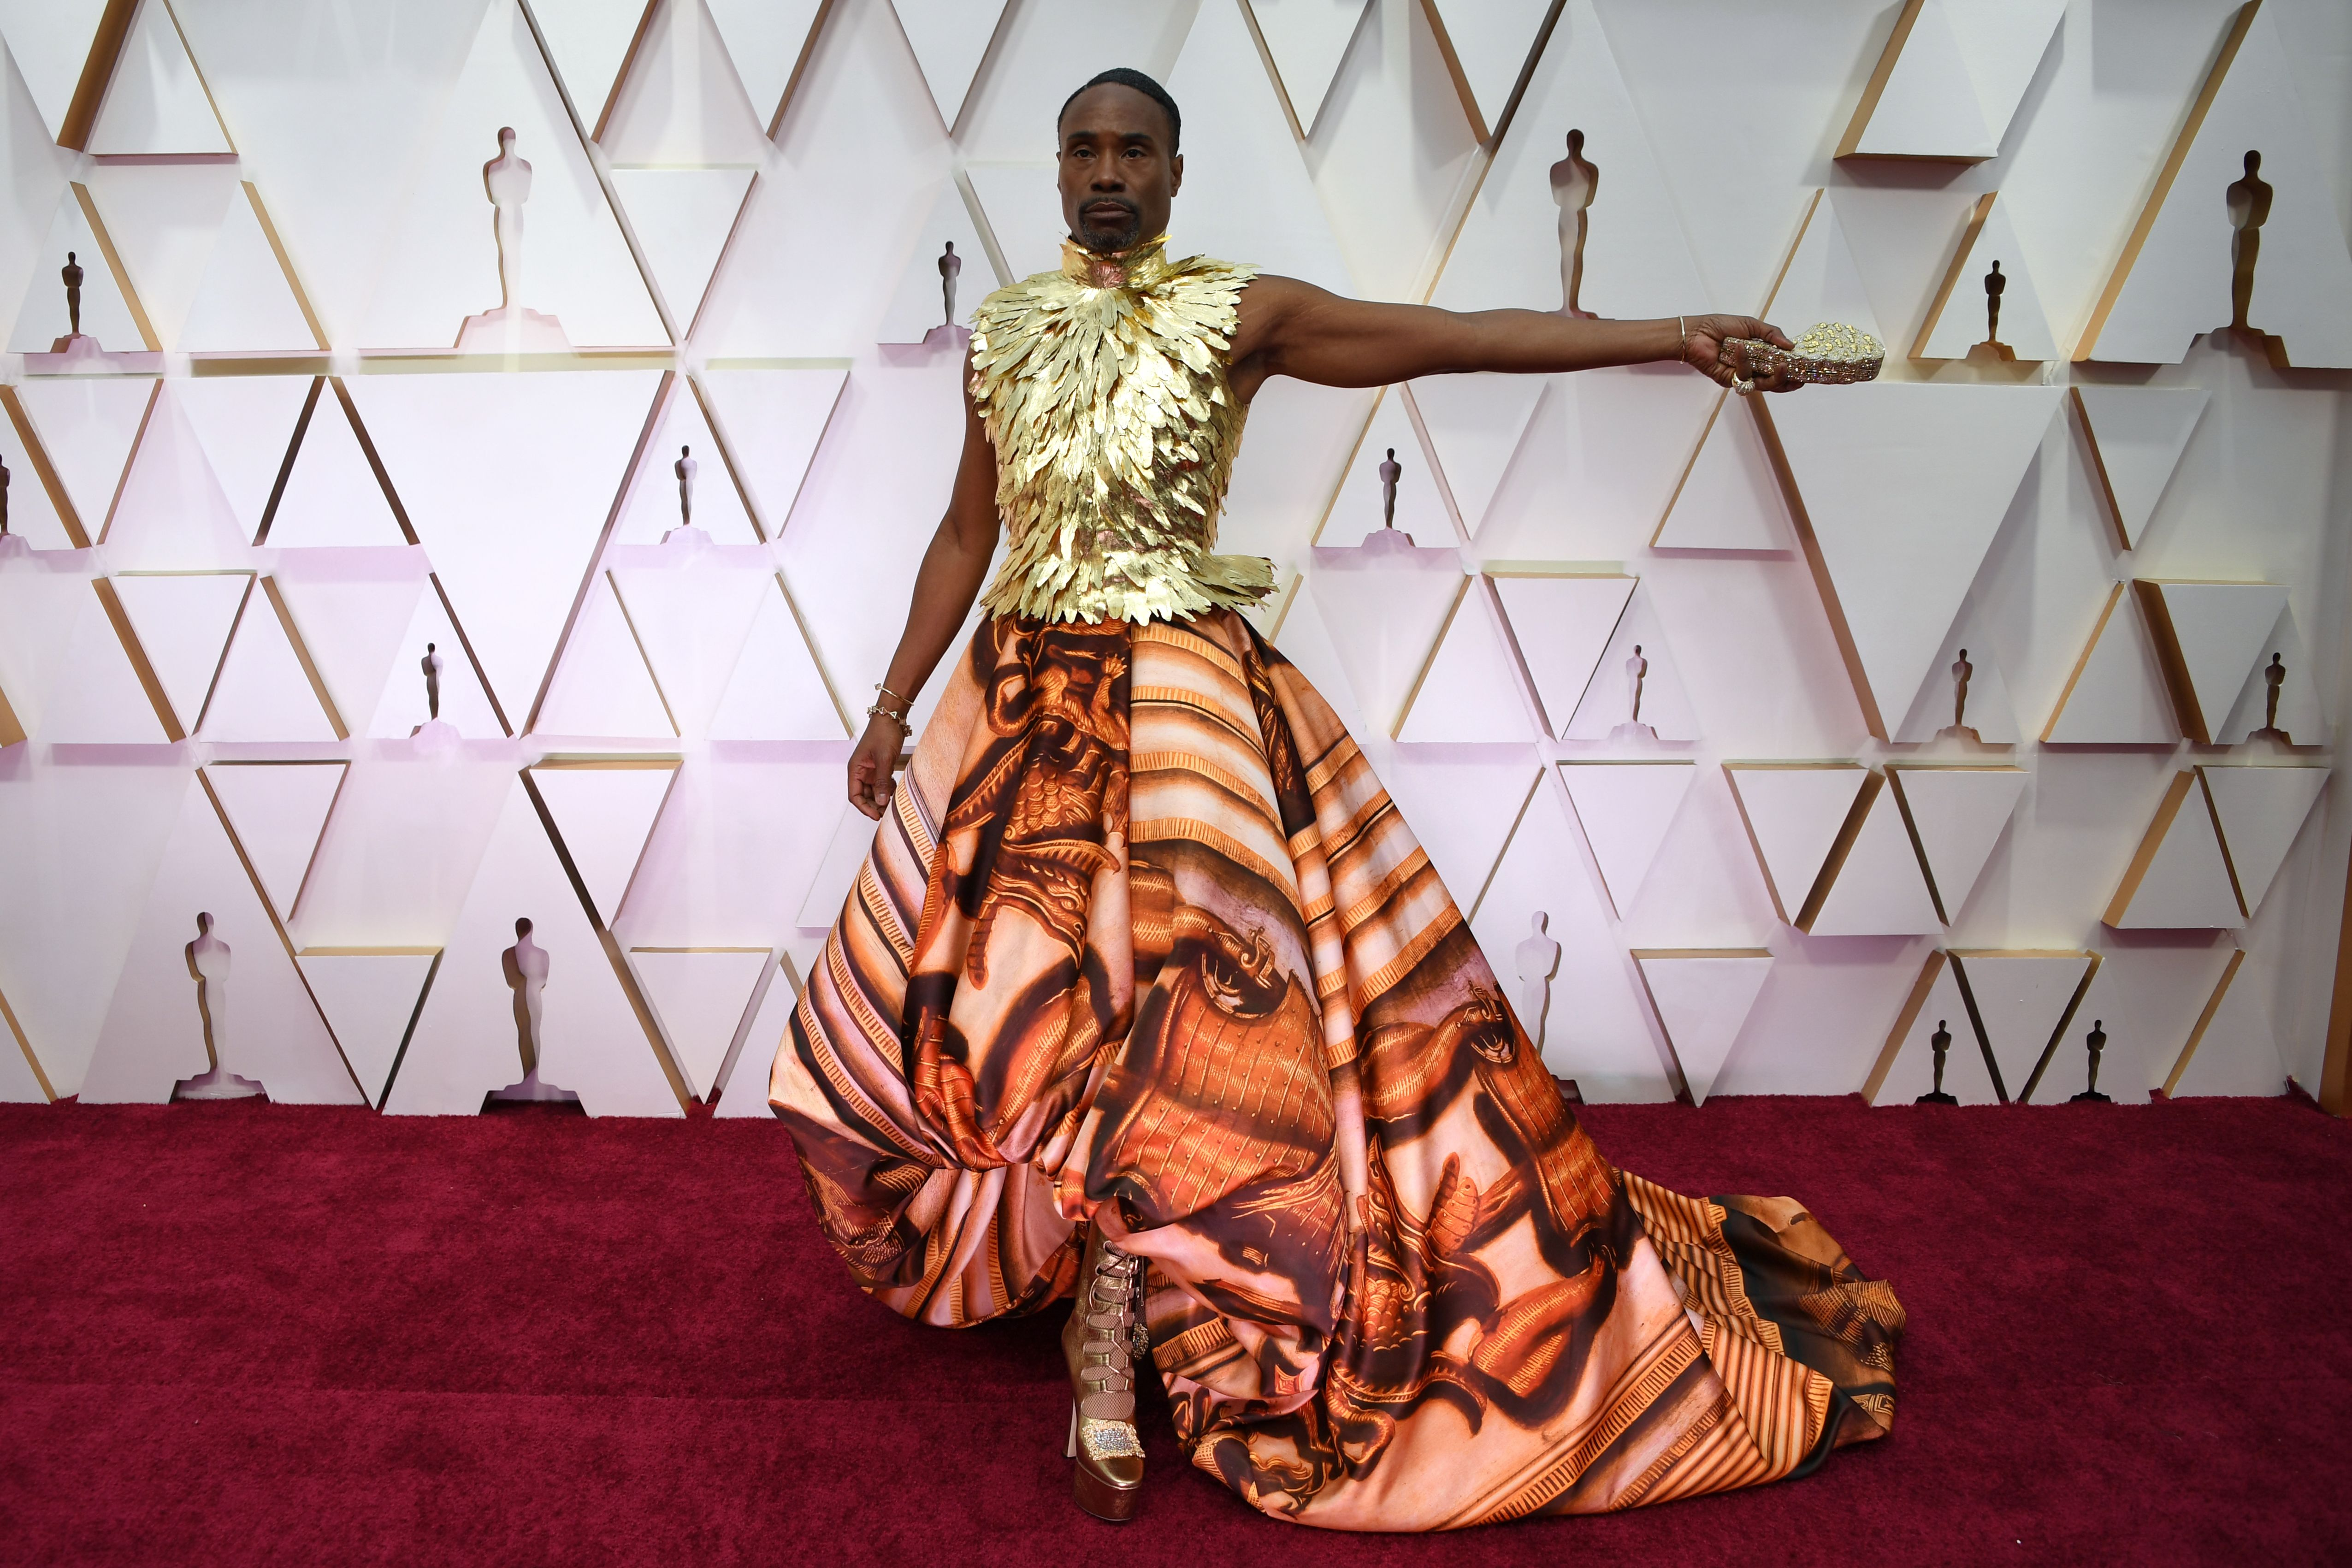 US actor Billy Porter arrives for the 92nd Oscars at the Dolby Theatre in Hollywood, California on February 9, 2020. (Photo by Robyn Beck / AFP) (Photo by ROBYN BECK/AFP via Getty Images)